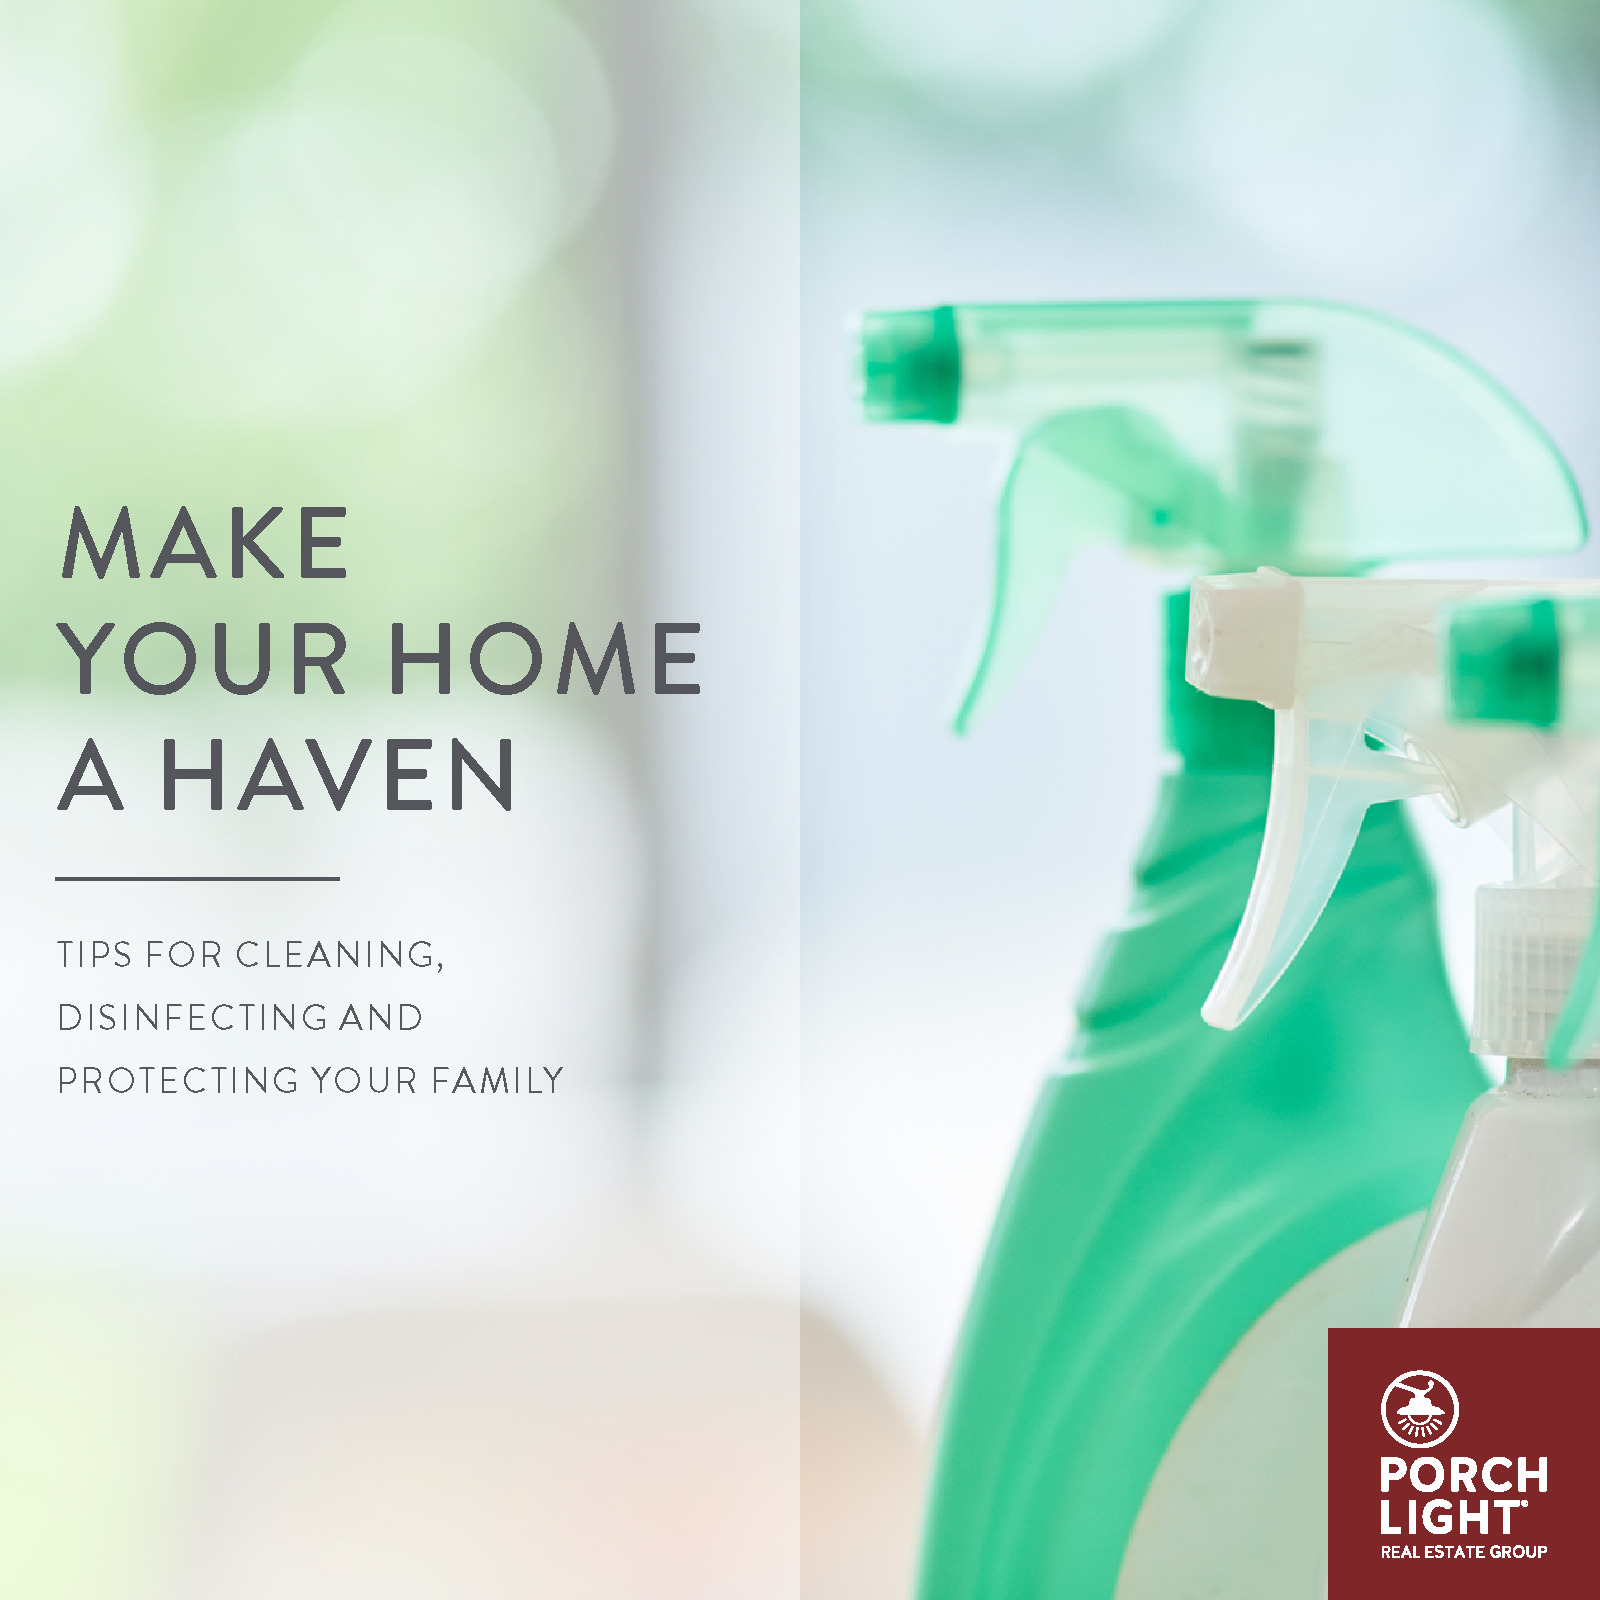 Make Your Home a Haven